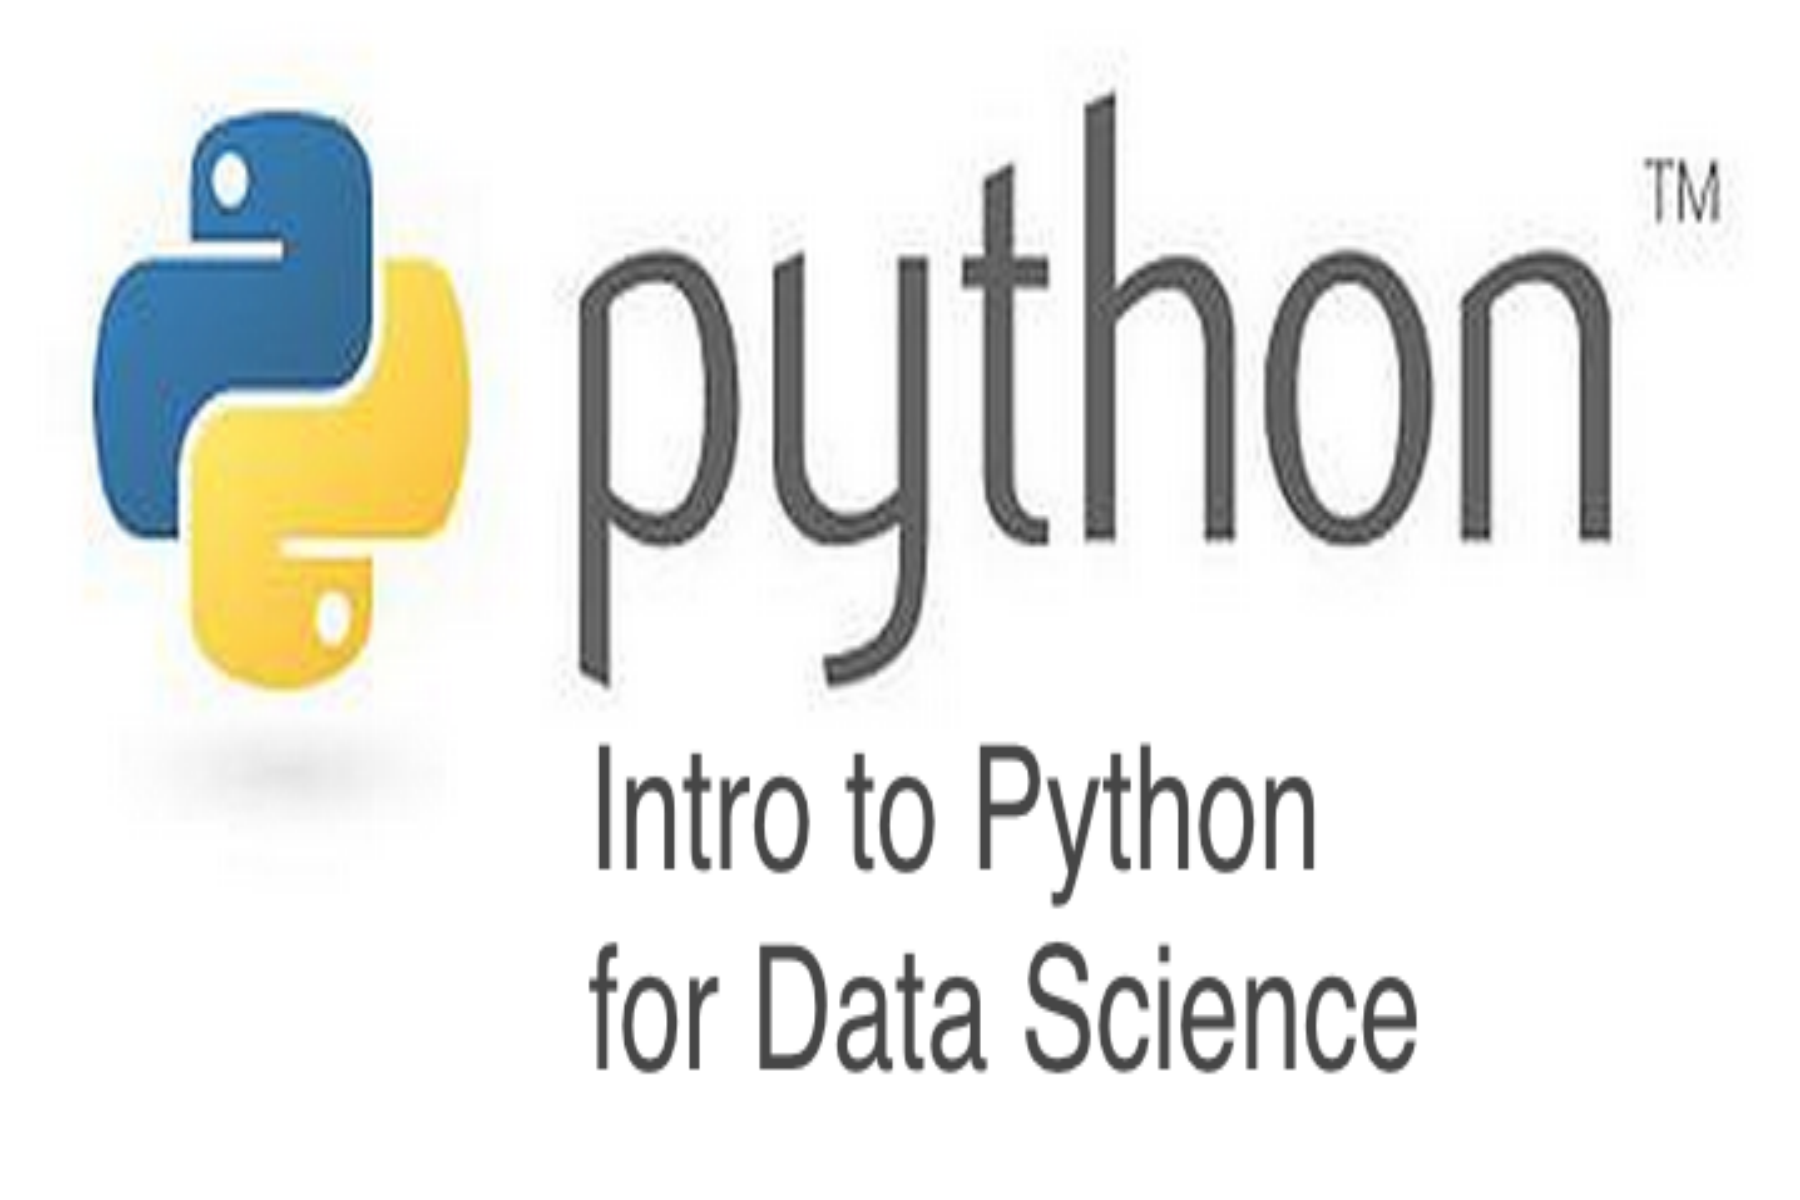 DataScience with Python Training in Chennai